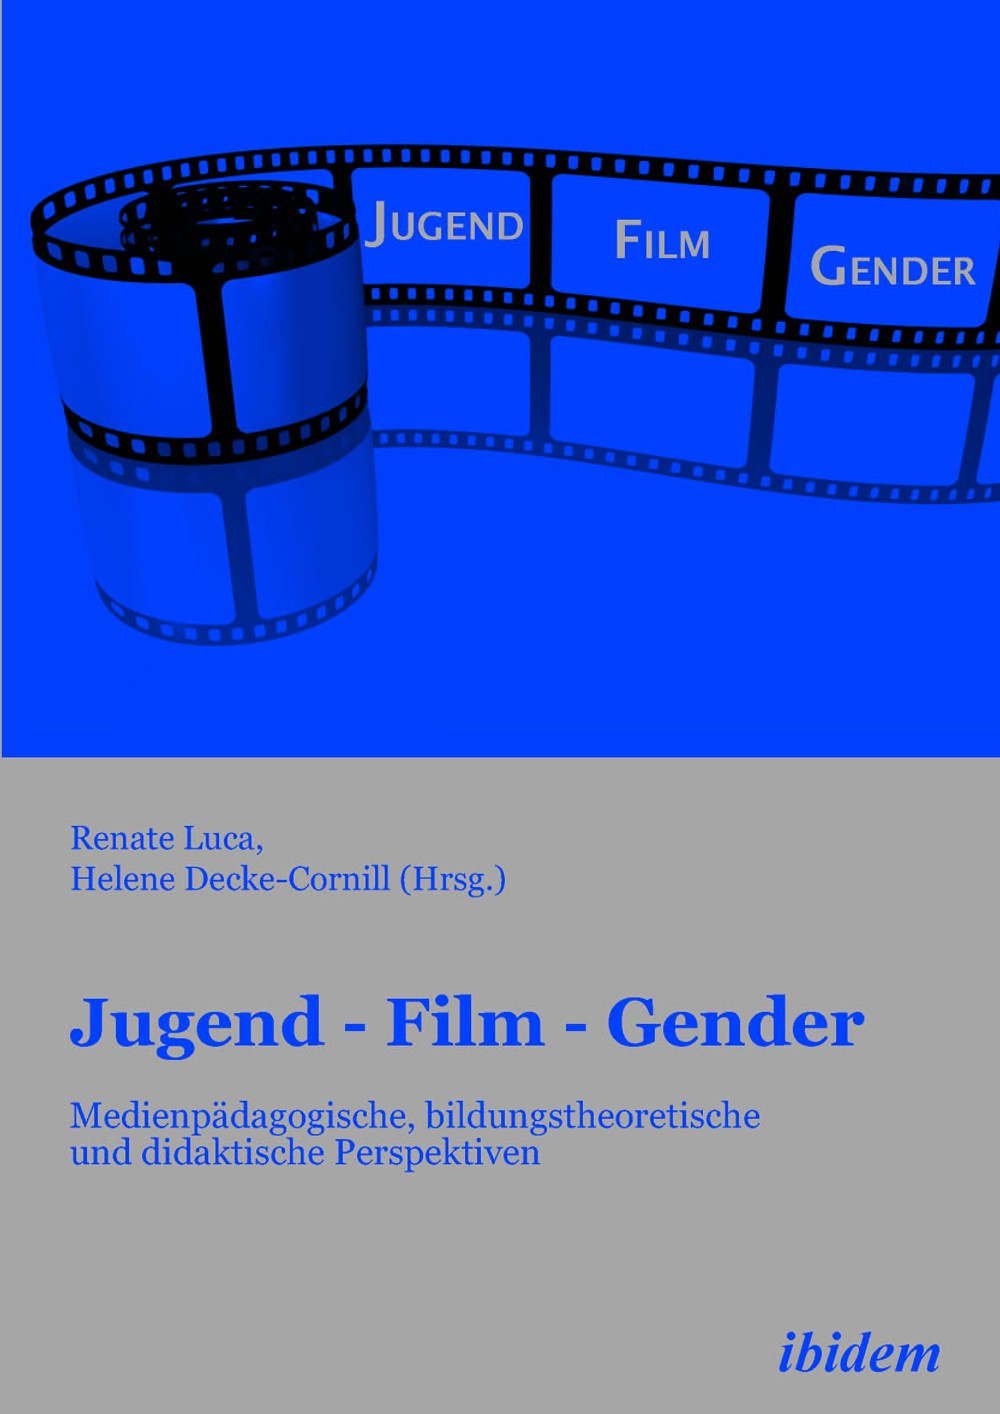 Jugend - Film - Gender